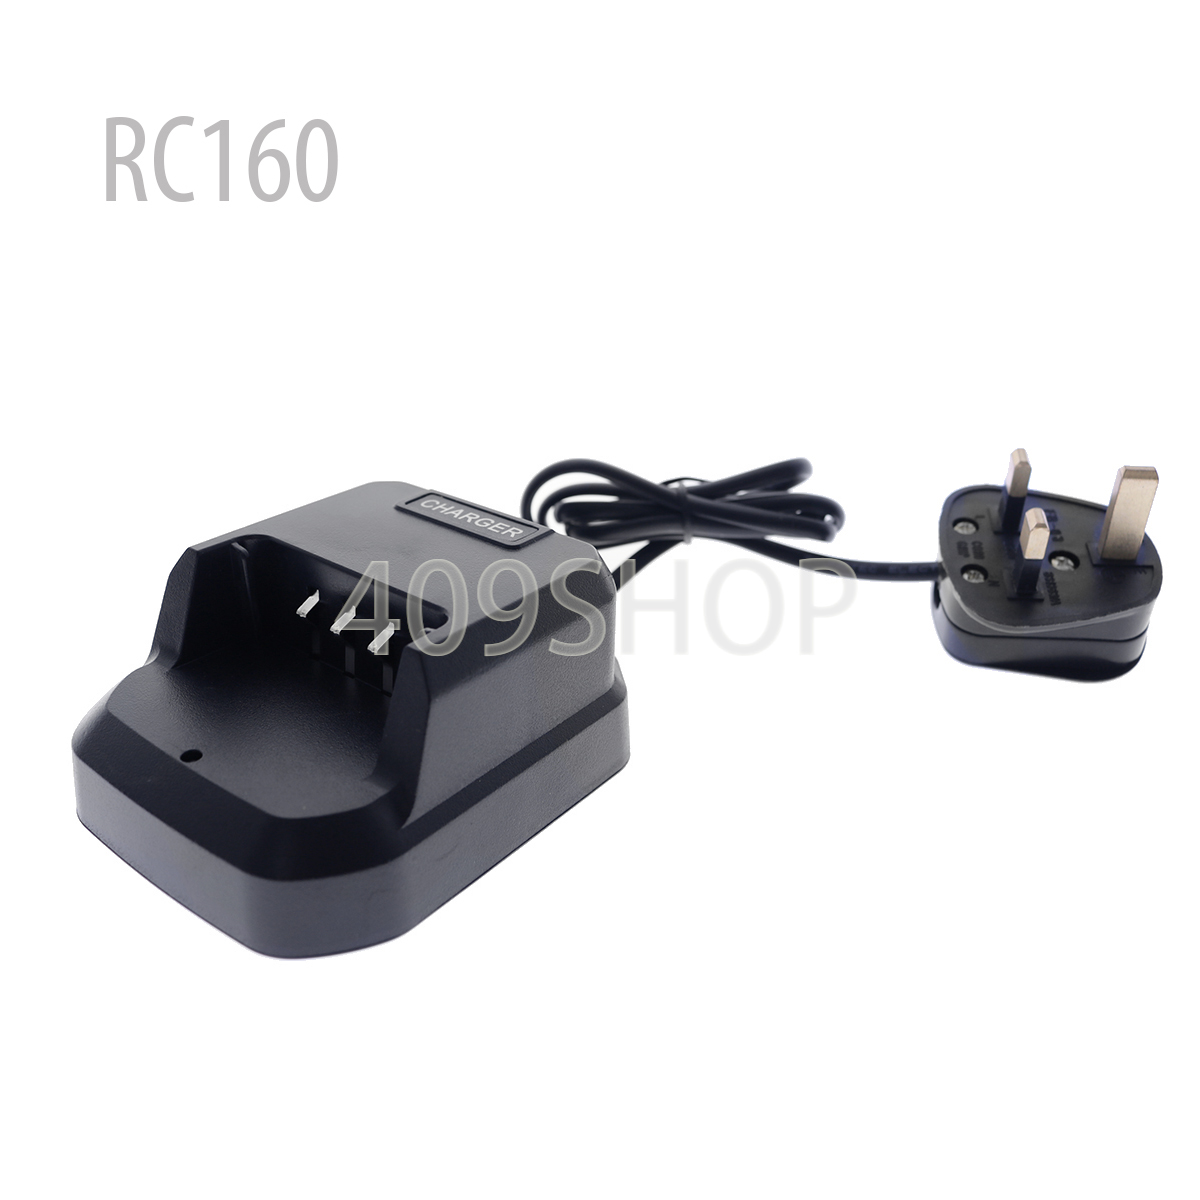 RC160 CHARGER WITH 3 Pinks UK POWER PLUG ForSJ409